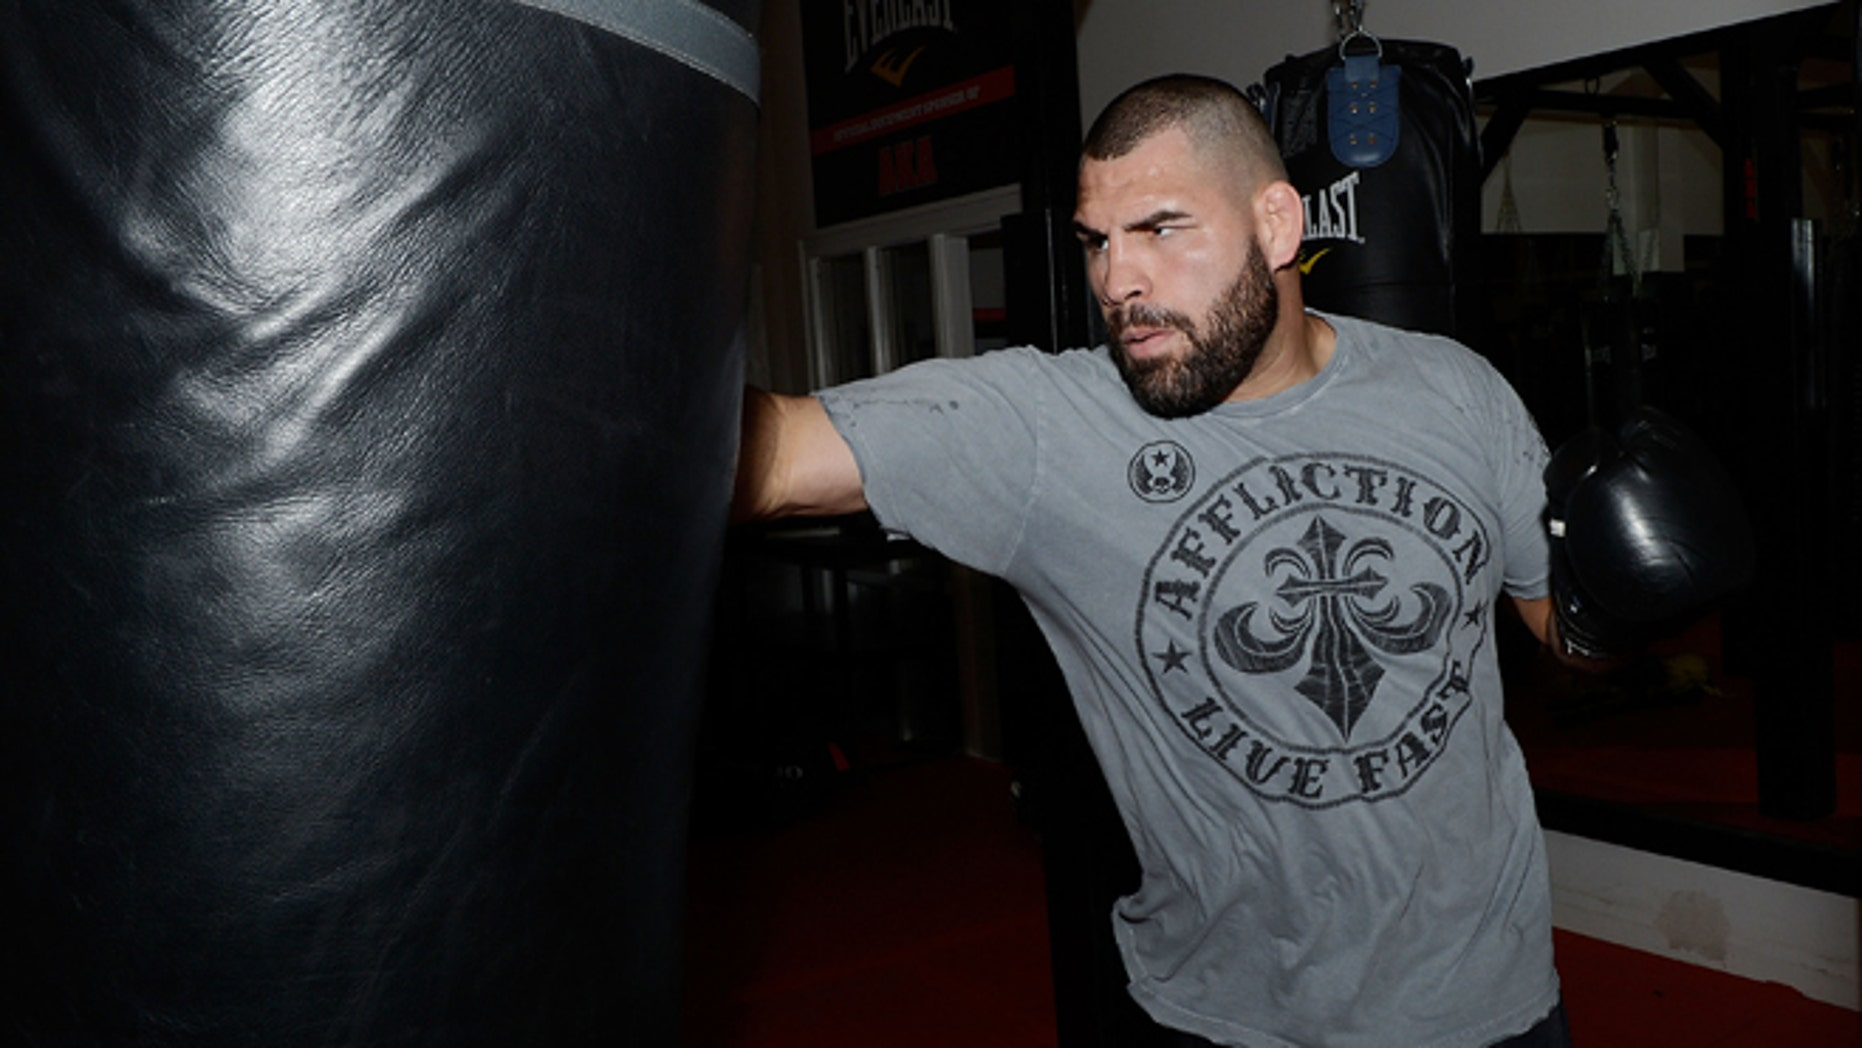 SAN JOSE, CA - FEBRUARY 15:  UFC Heavyweight Champion Cain Velasquez works out at AKA San Jose on February 15, 2013 in San Jose, California.  (Photo by Thearon W. Henderson/Getty Images)